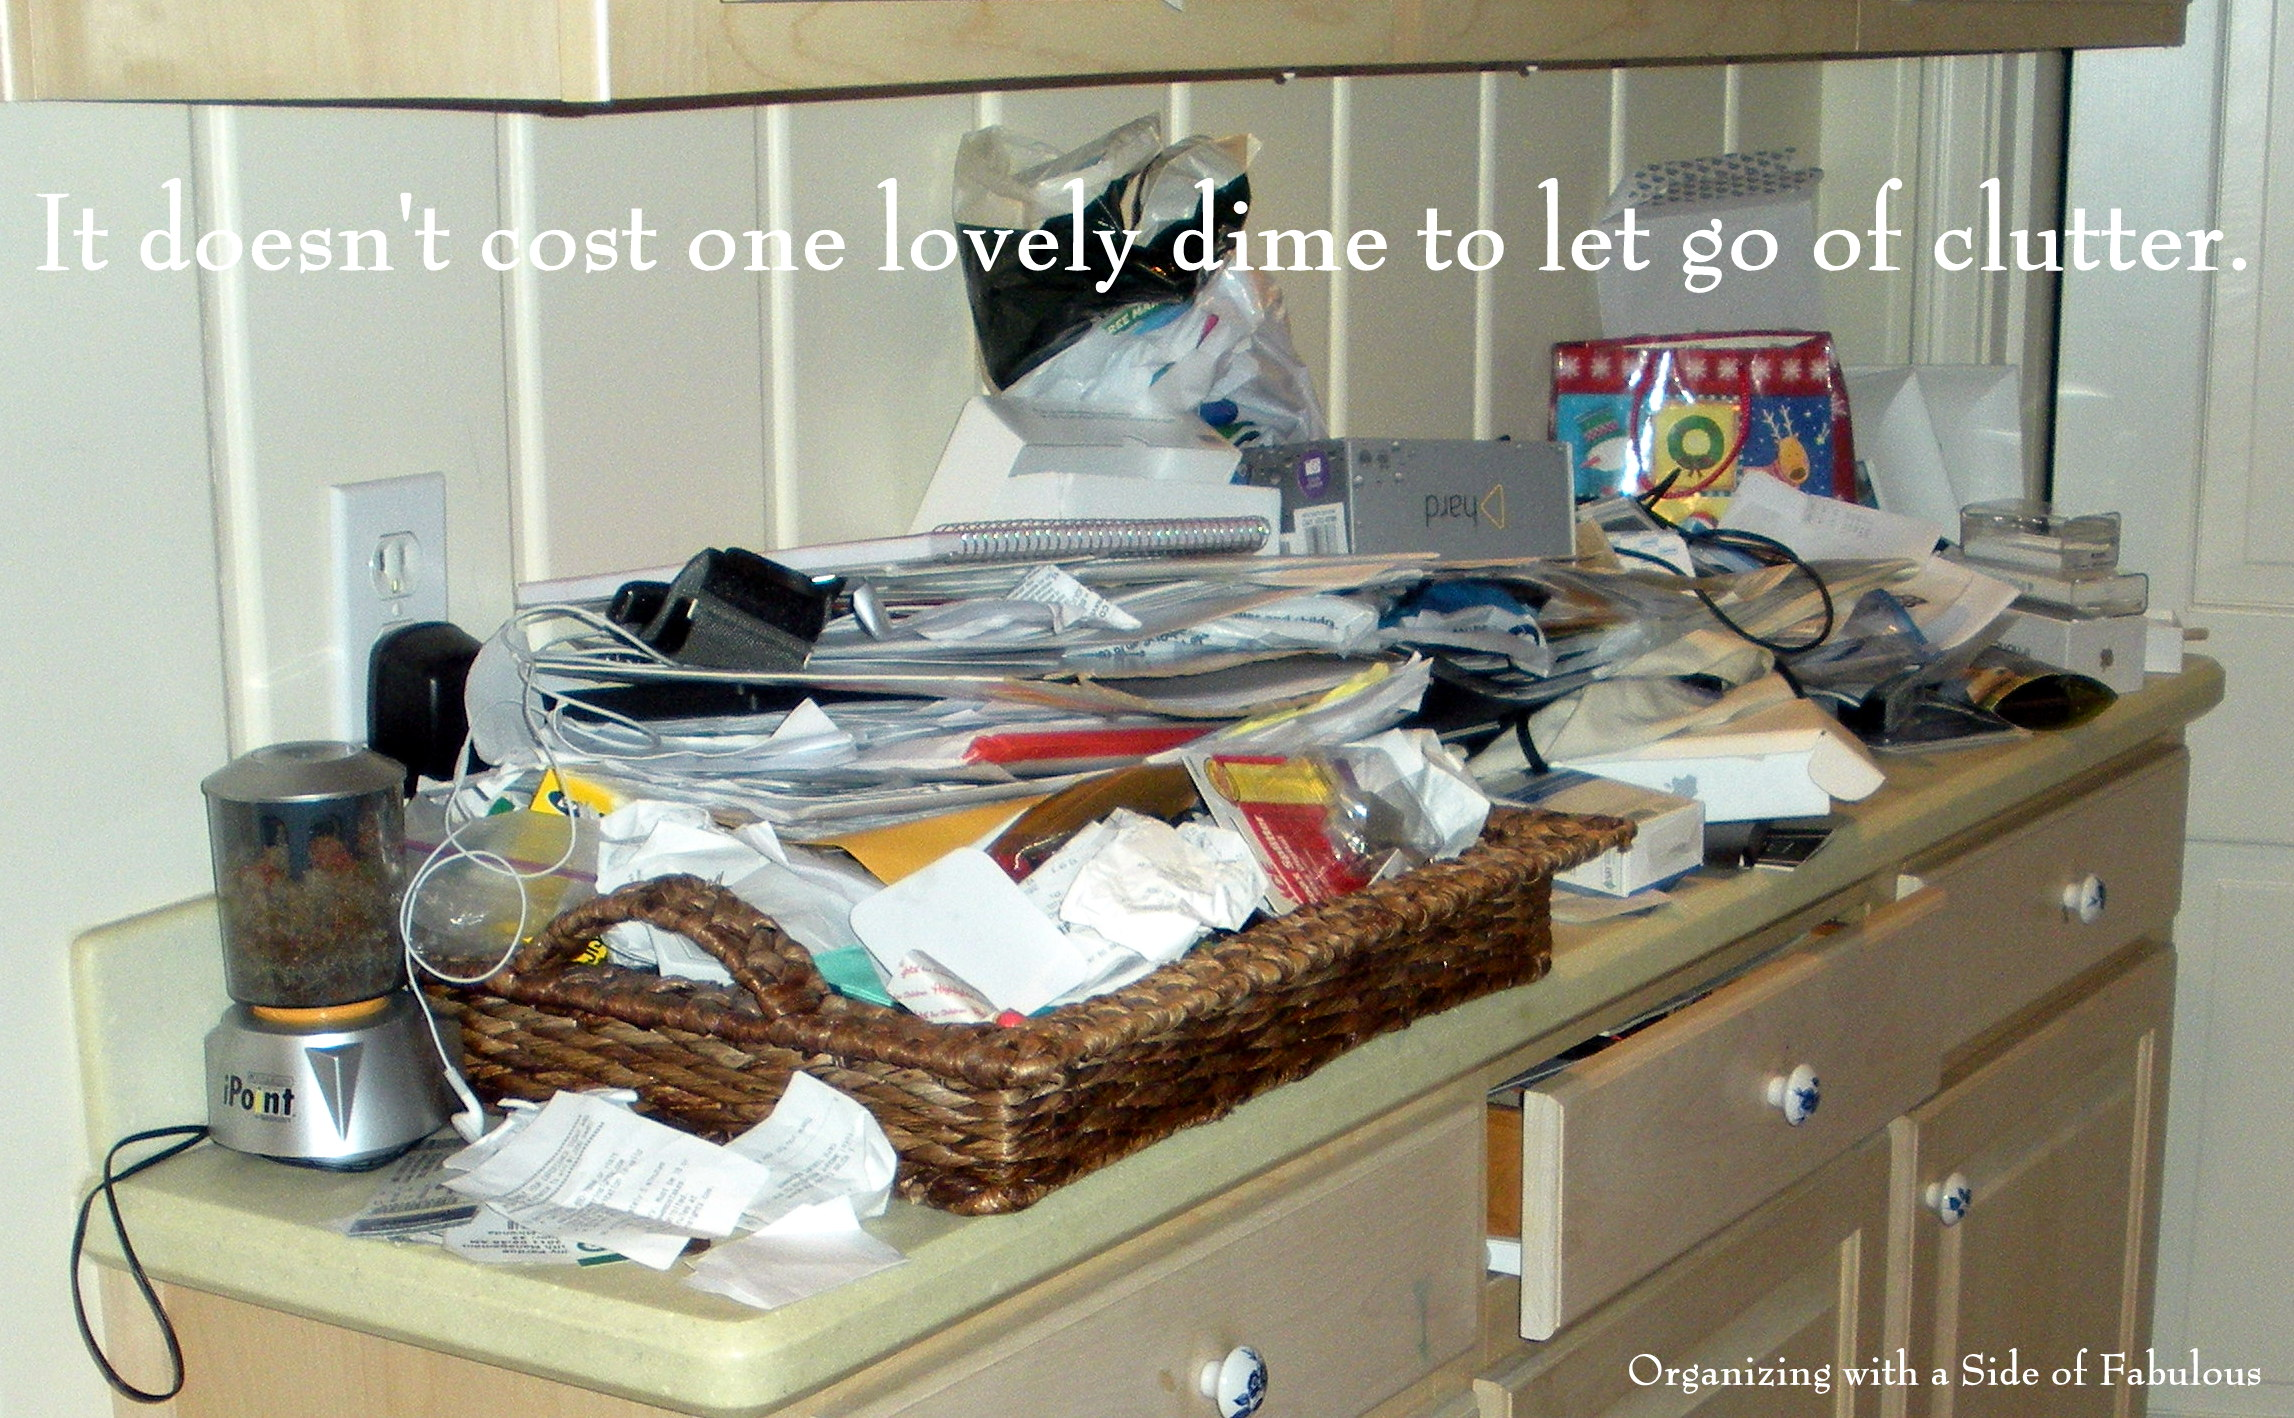 Organizing on a Budget? - Organizing with a Side of Fabulous blog